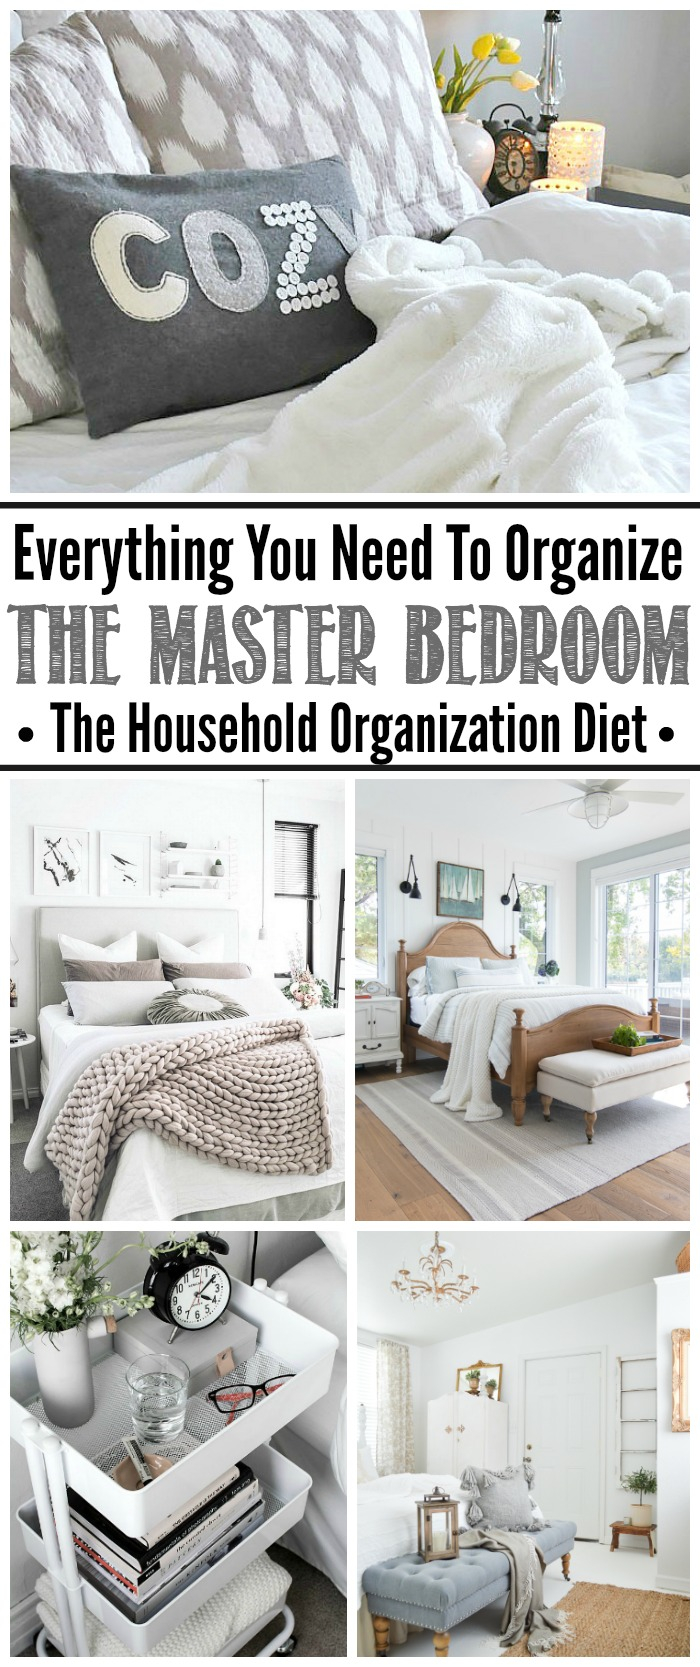 How to Organize the Master Bedroom September HOD